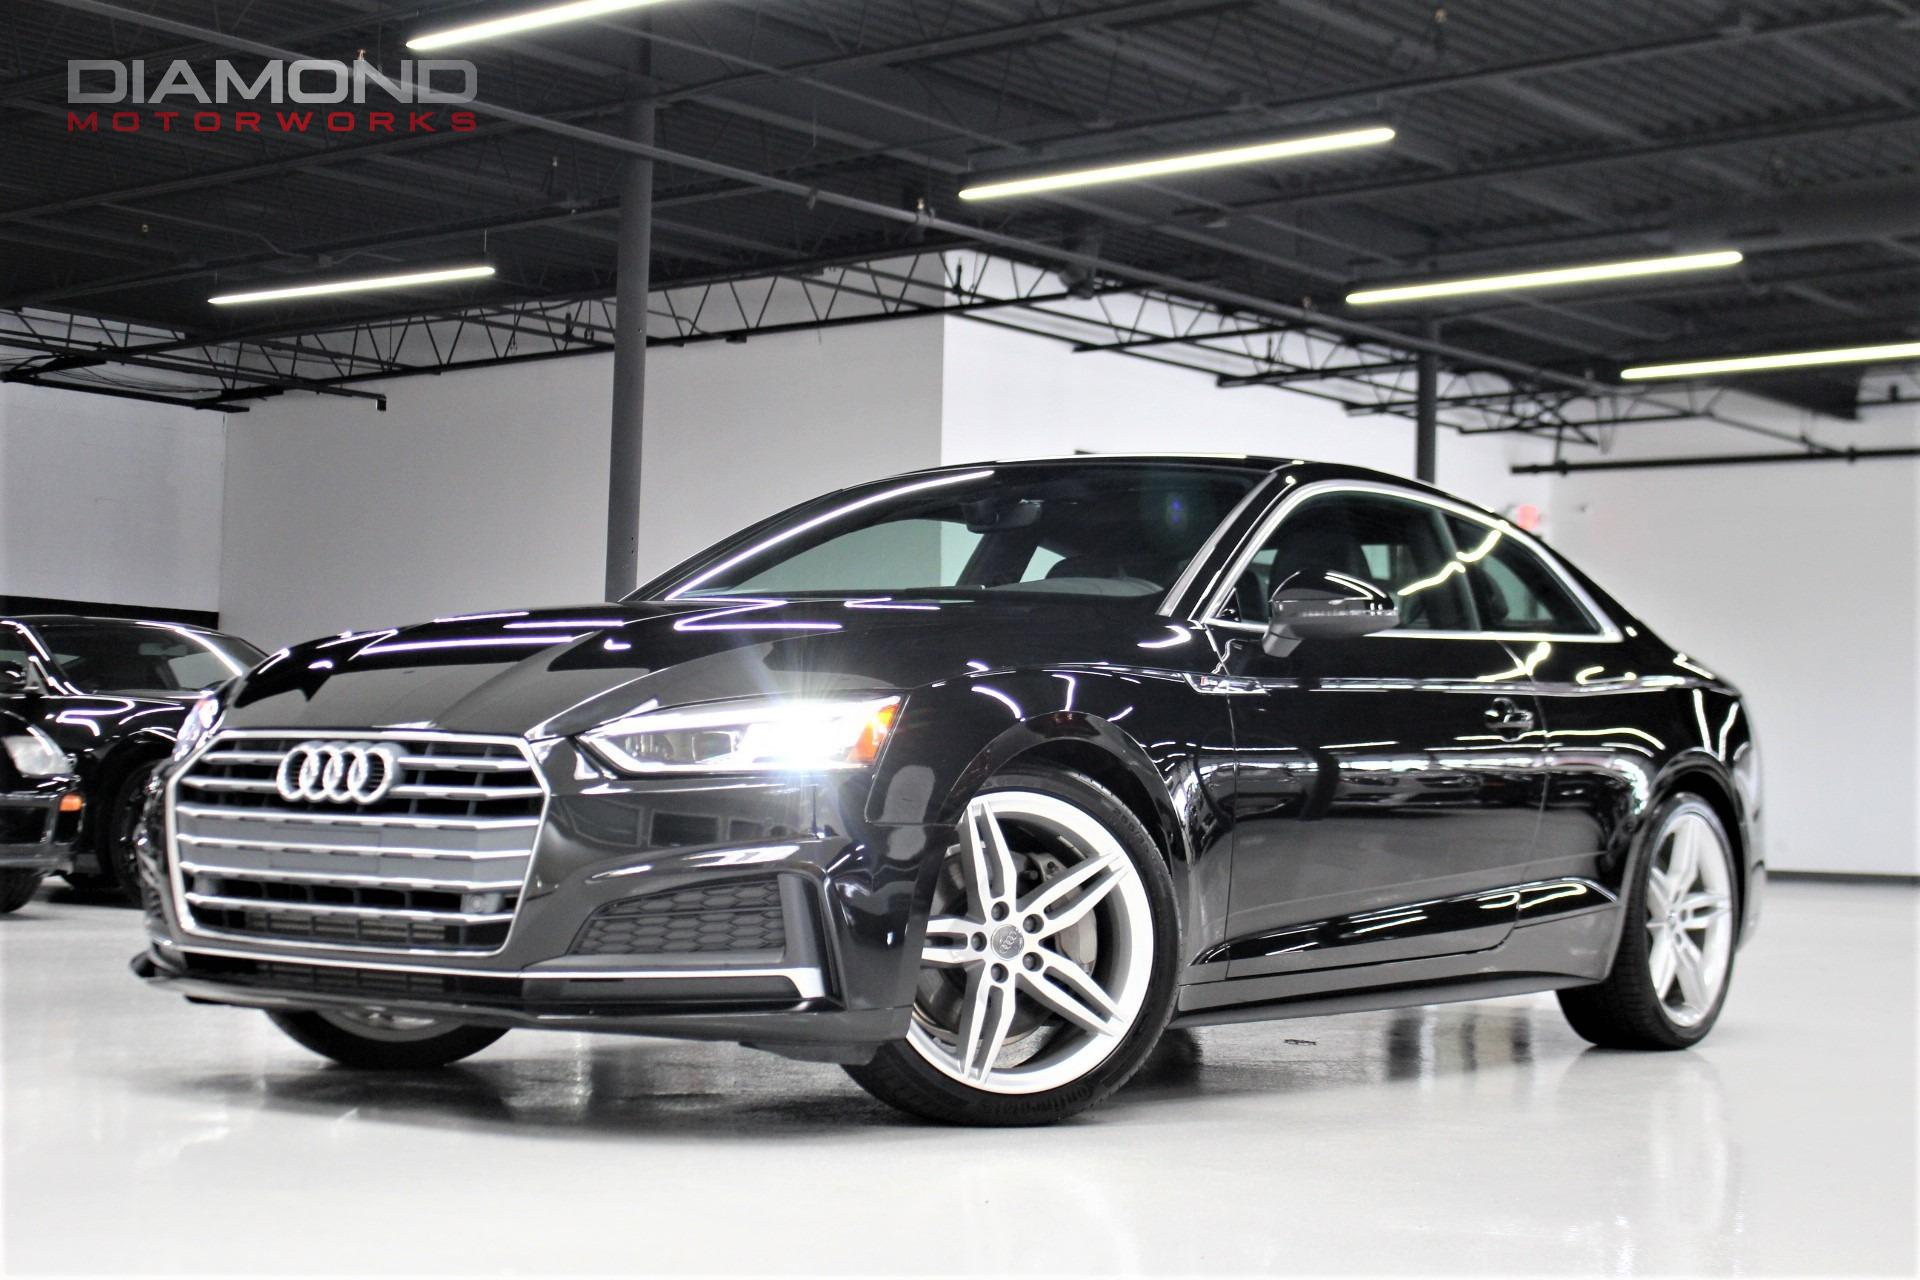 motor front manual used angular en audi research trend coupe new cars models canada reviews